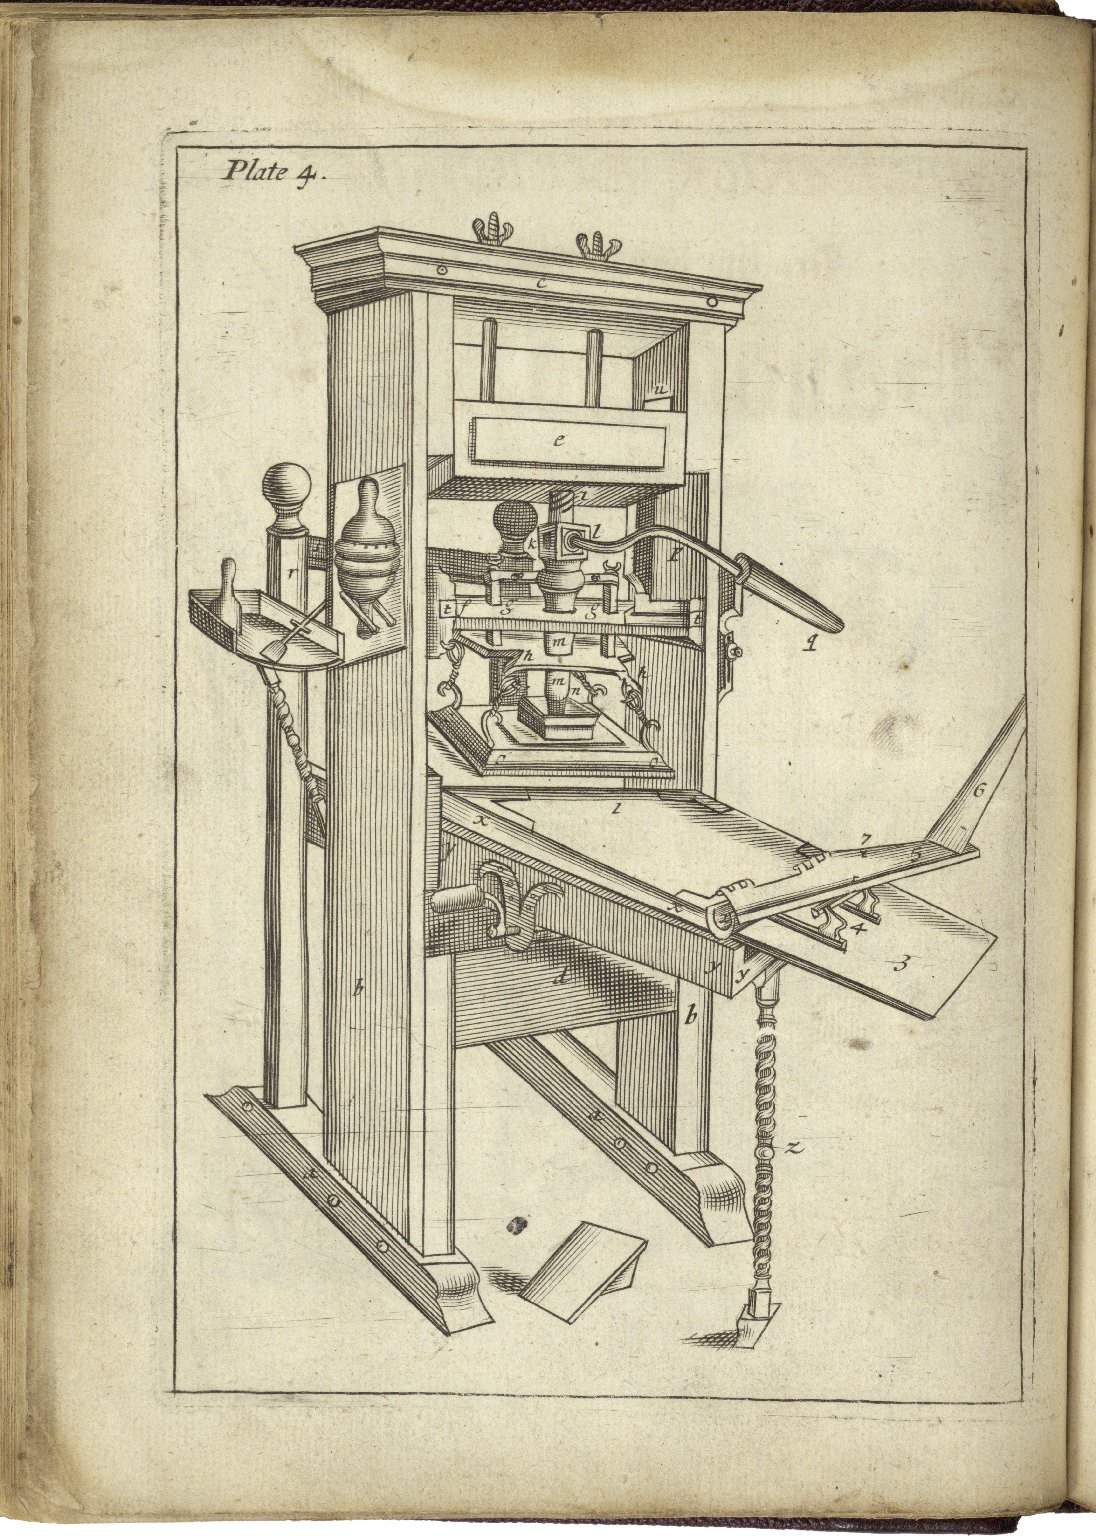 Printing Press from Moxon's Mechanick Exercises